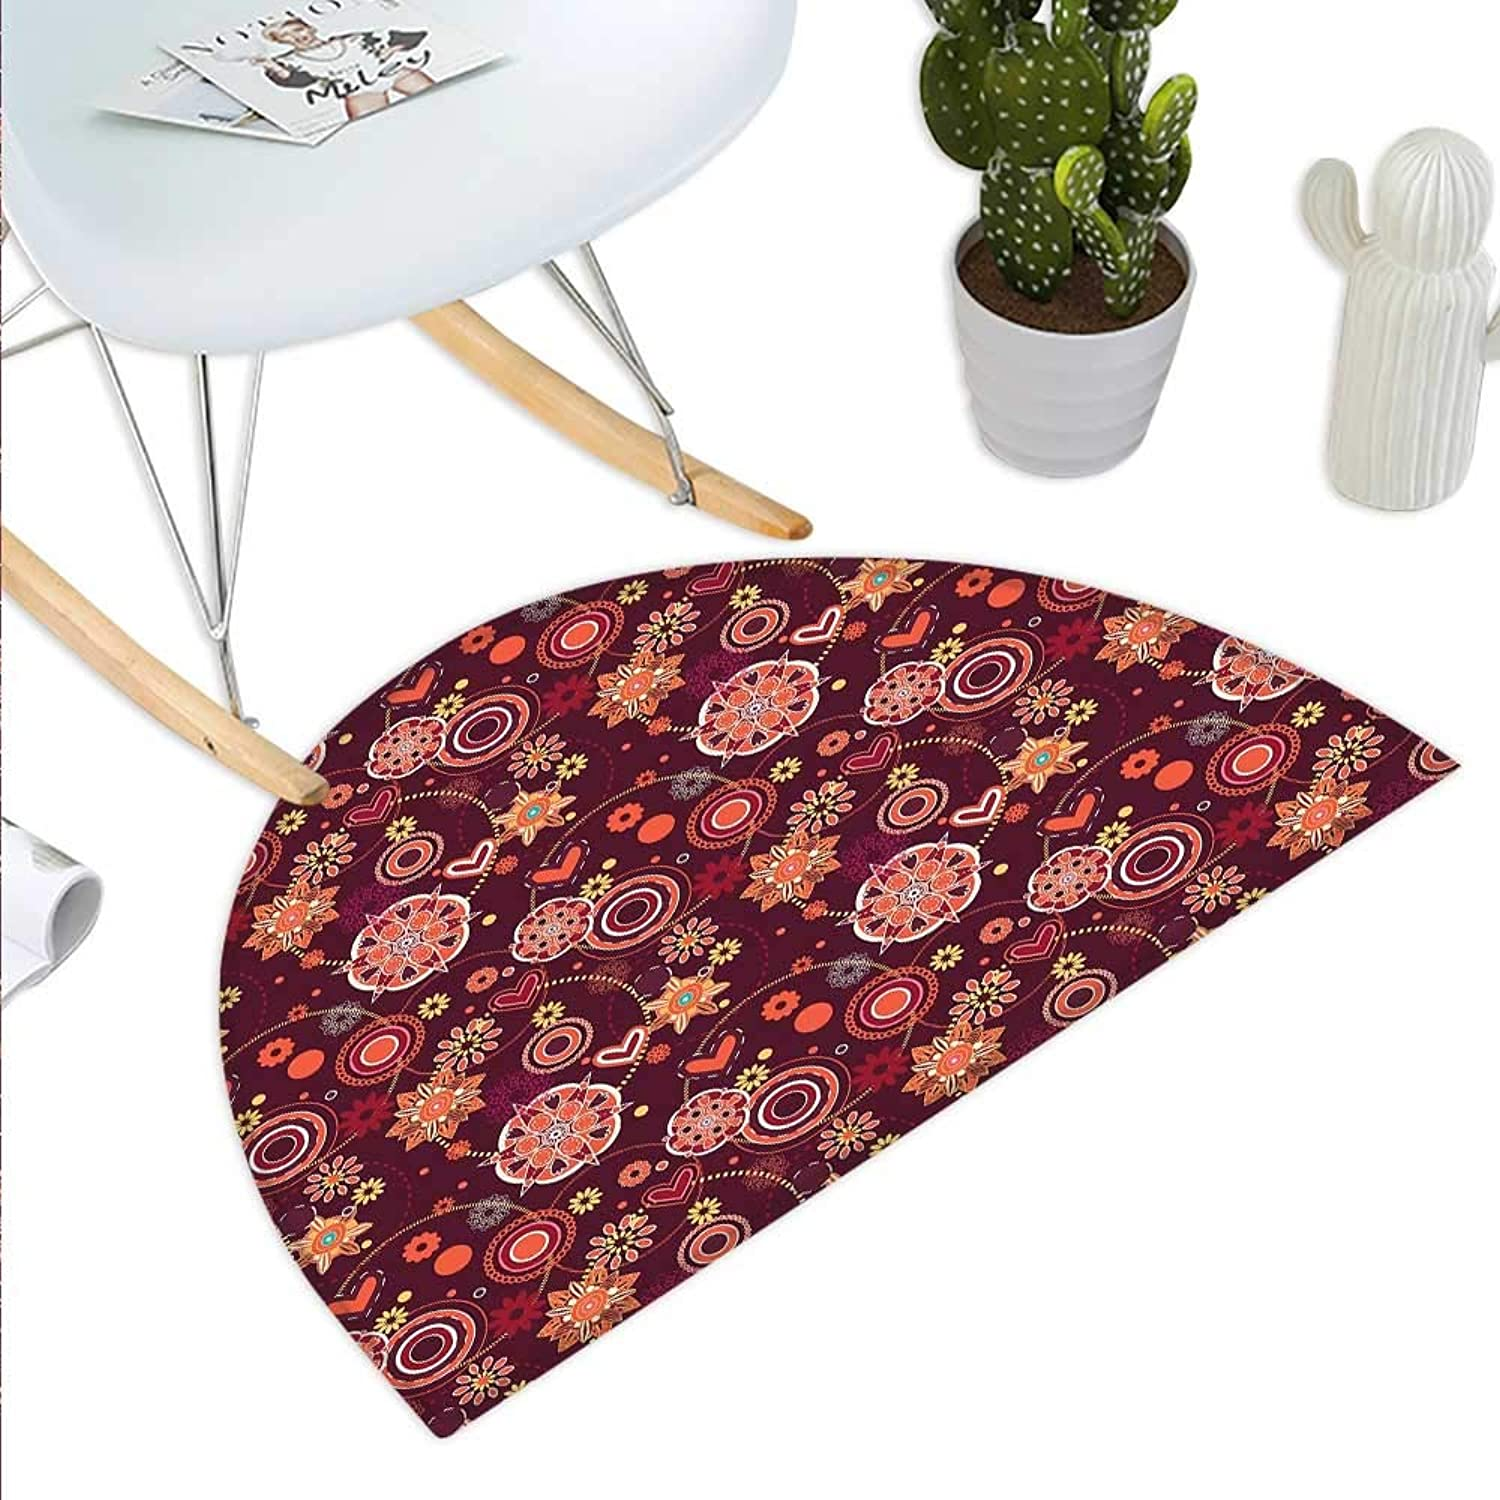 Red and Brown Semicircle Doormat Vintage Rich Foliage Pattern Ornamental Spring Flowers and Circles Halfmoon doormats H 35.4  xD 53.1  Maroon orange Yellow